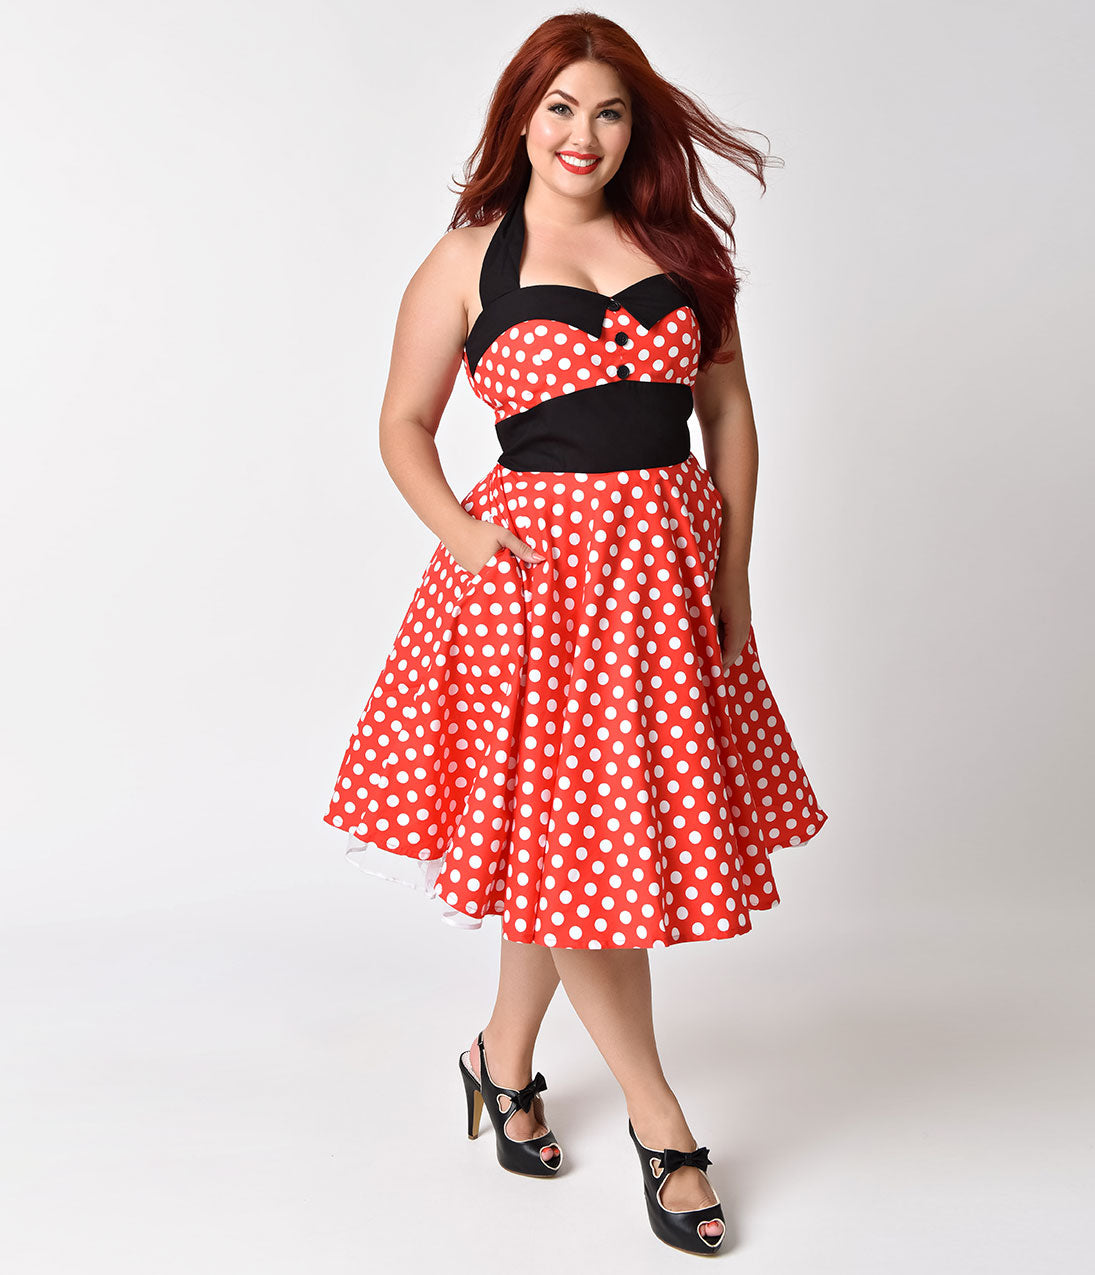 Plus Size Polka Dot Dresses – Vintage 40s, 50s, 60s Dresses Plus Size 1950s Style Red  White Polka Dot Ashley Halter Swing Dress $54.00 AT vintagedancer.com